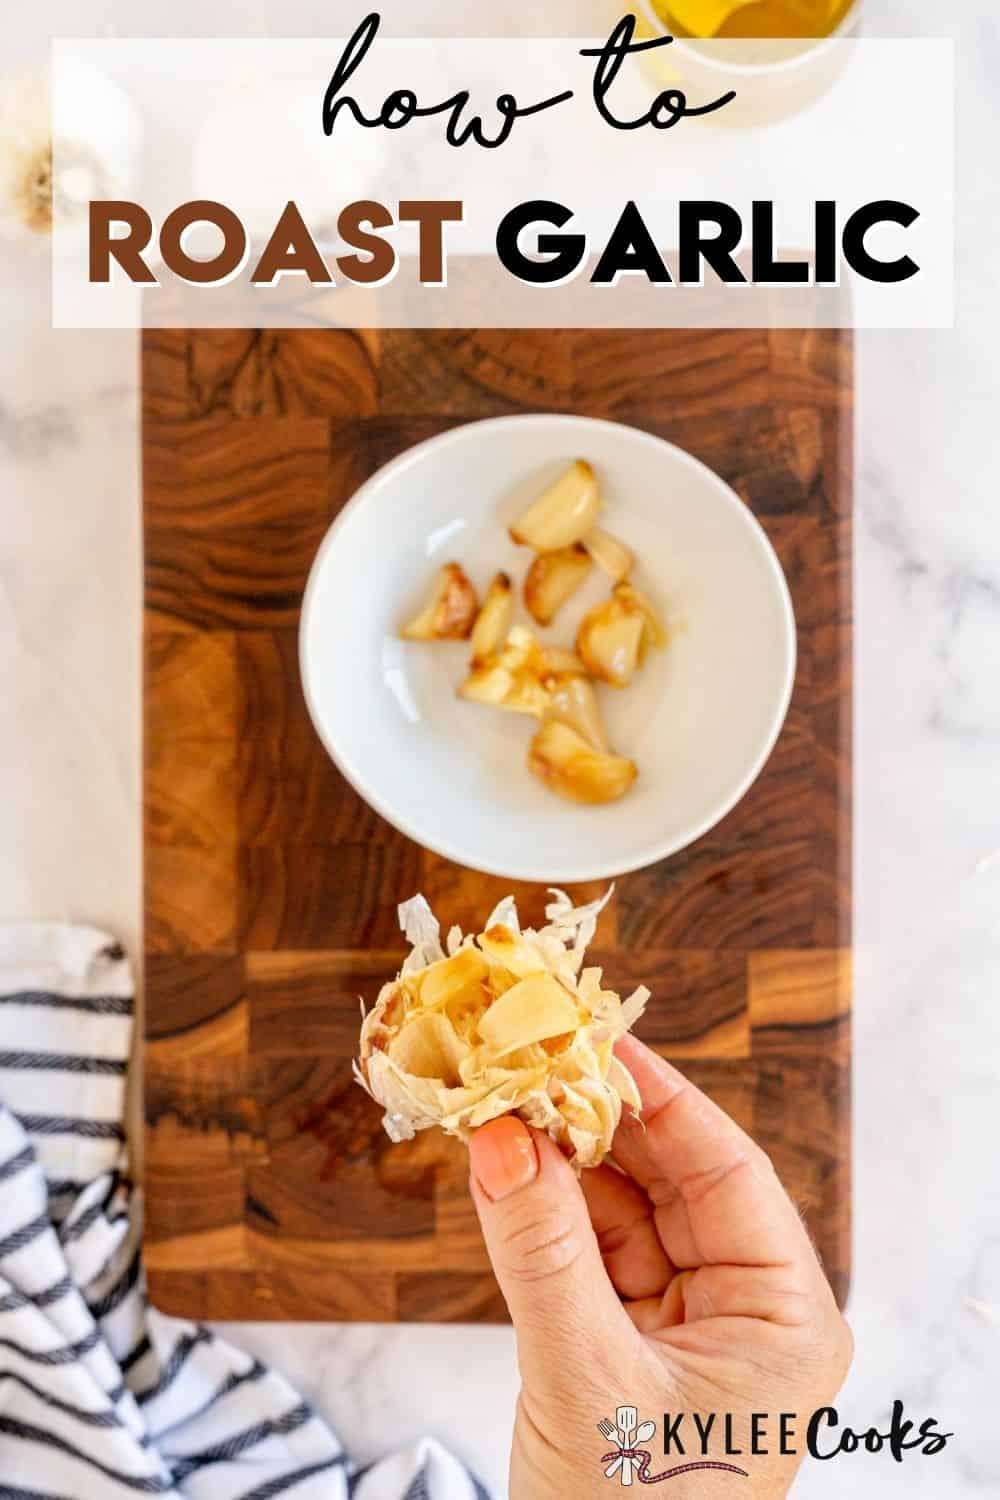 hand holding a head of roasted garlic with text overlay